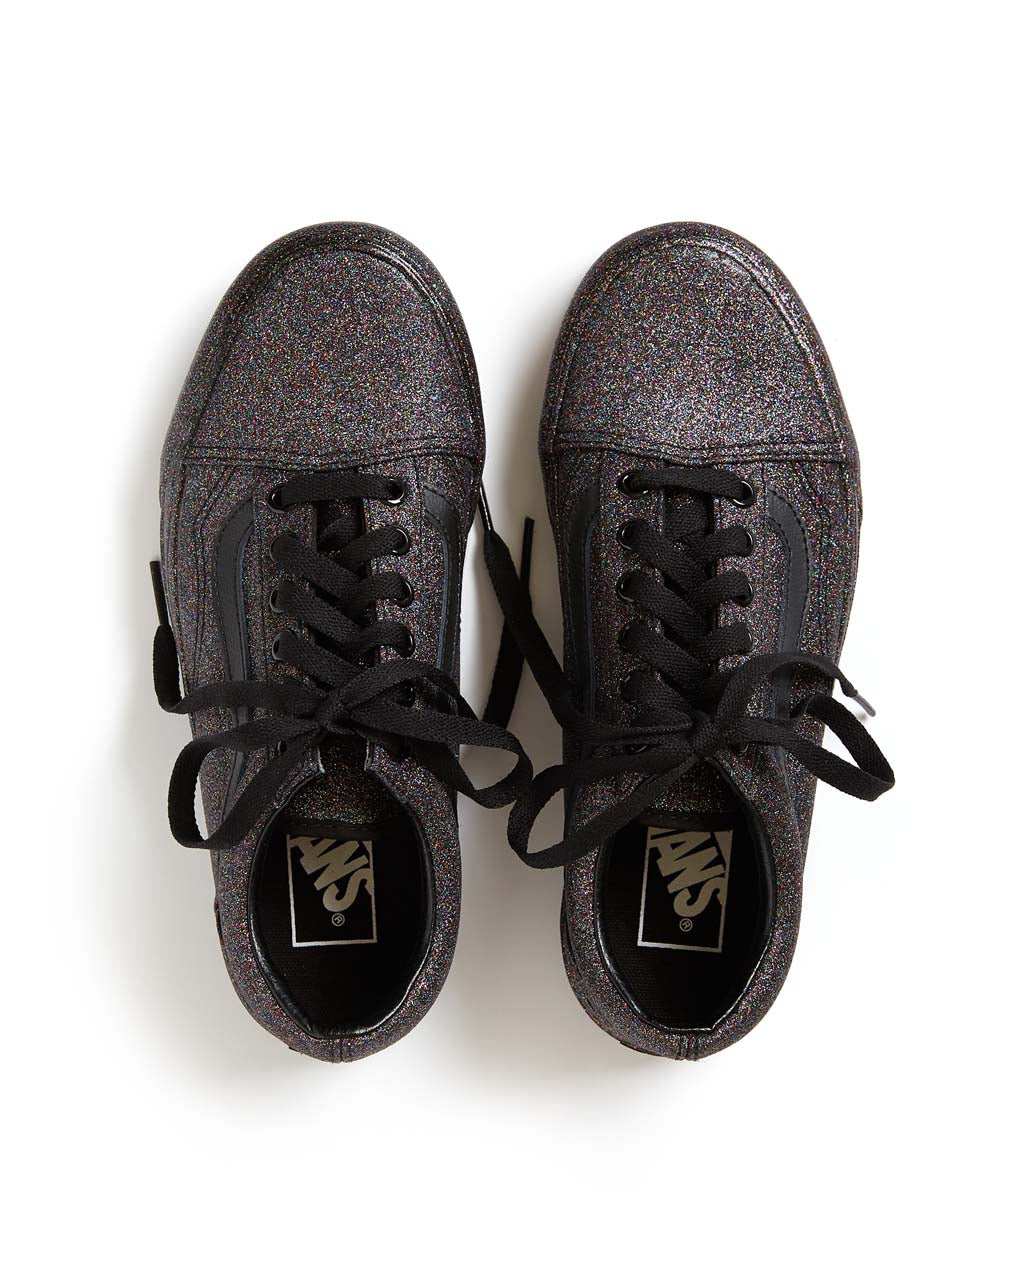 Old Skool - Black Rainbow Glitter by vans - shoes - ban.do a866f4740